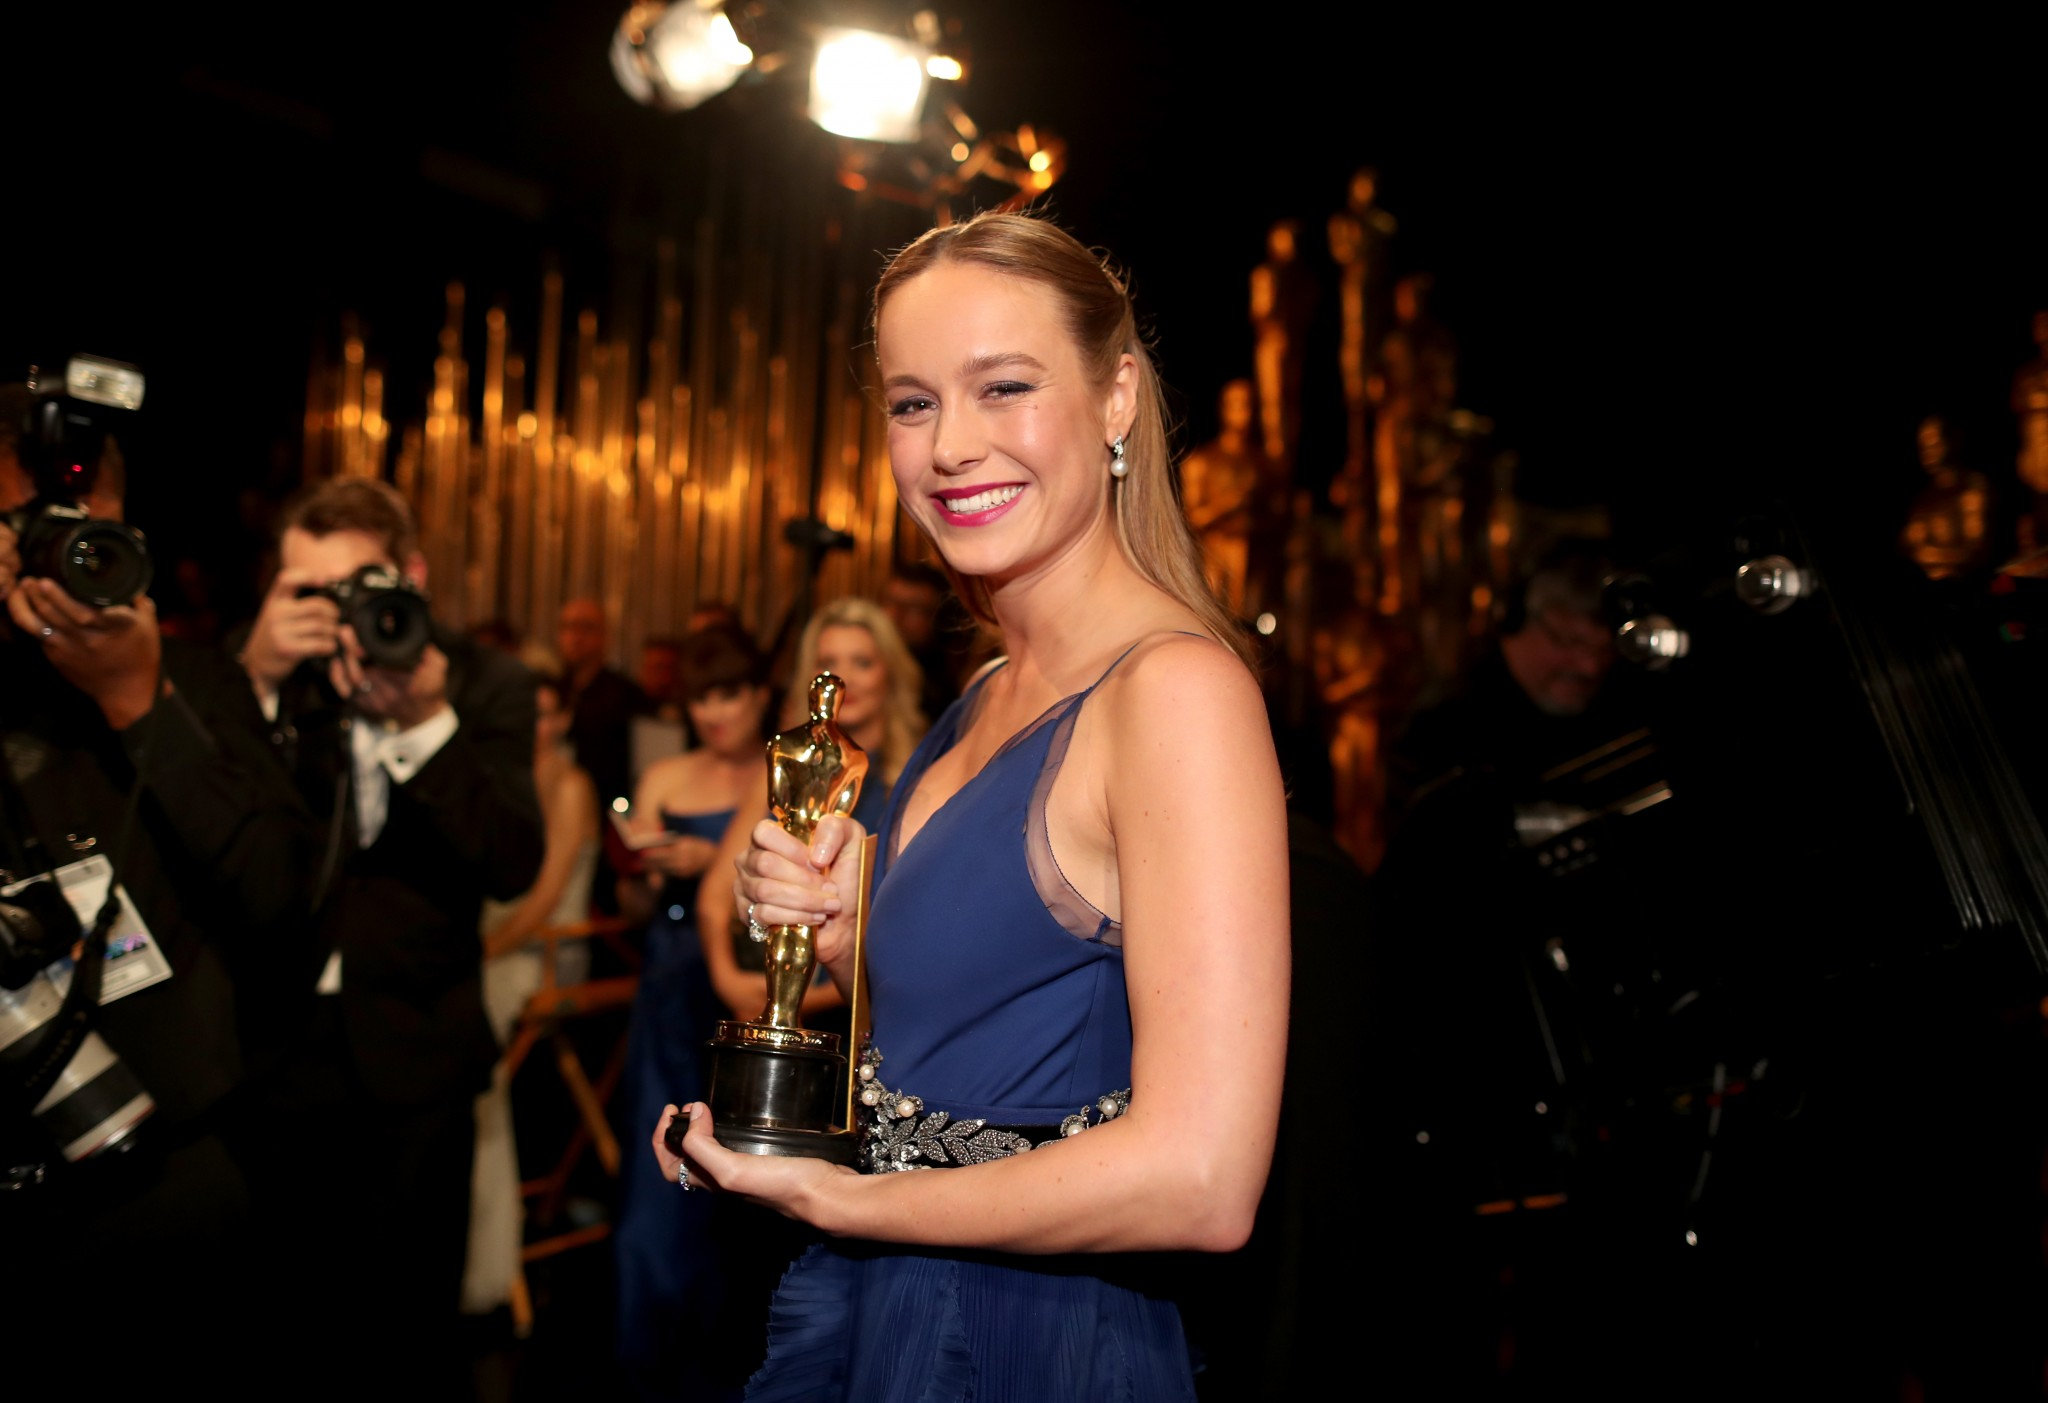 Brie Larson backstage at the Oscars.